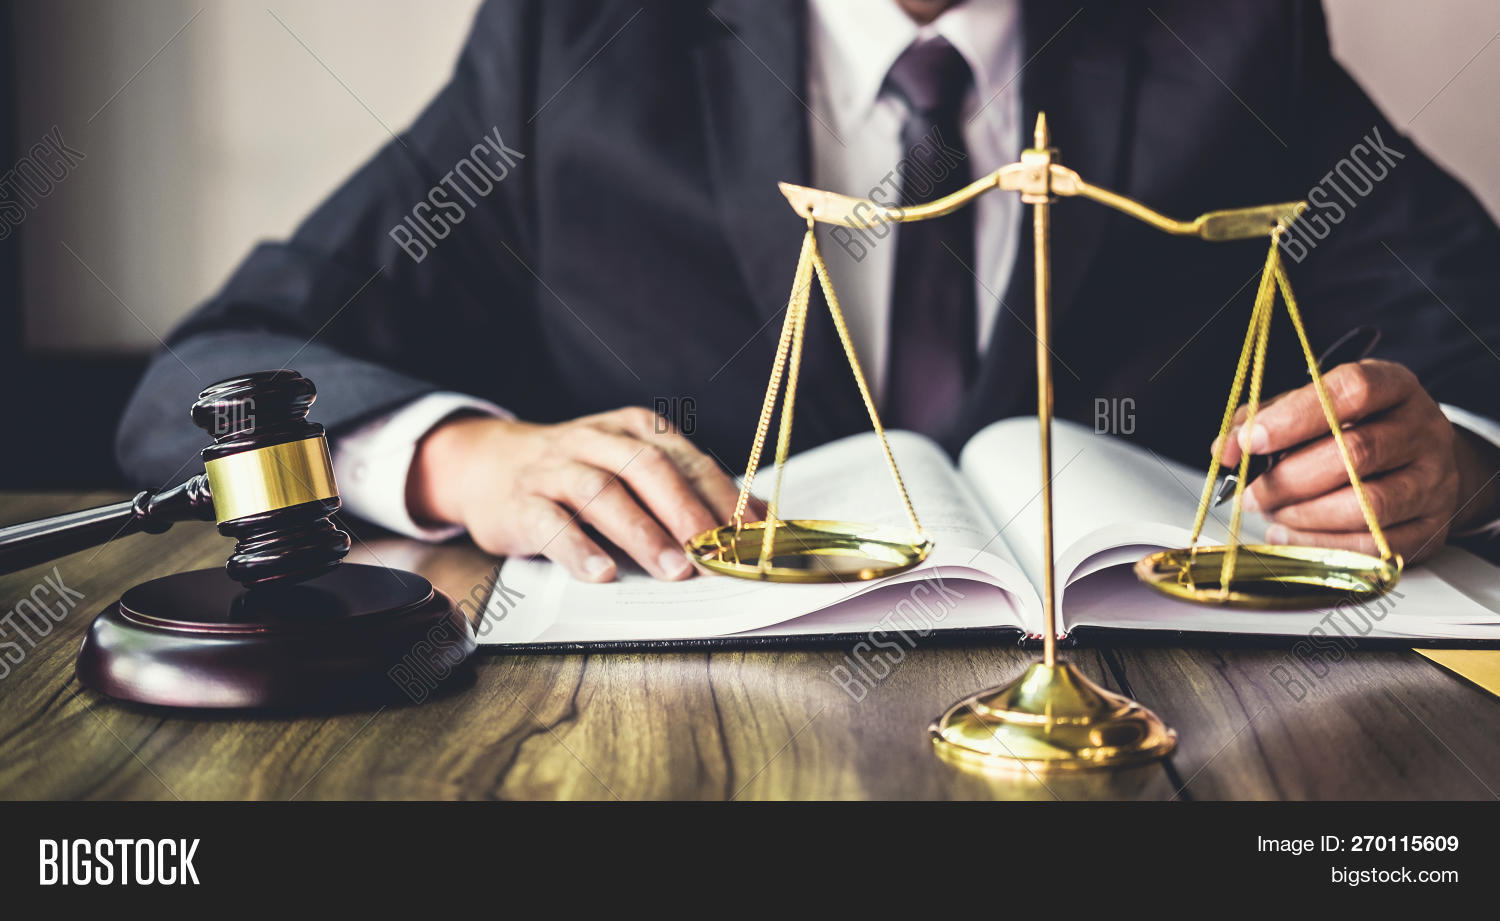 advice,adviser,advisor,advocate,agreement,attorney,auction,balance,barrister,book,business,communication,consult,consultant,contact,contract,counselor,court,courtroom,customer,document,estate,fairness,firm,gavel,government,hammer,help,instruction,judge,judgement,judgment,jurisdiction,jurisprudence,justice,law,lawyer,legal,legislation,mediation,meeting,notary,office,punishment,real,recommend,teamwork,verdict